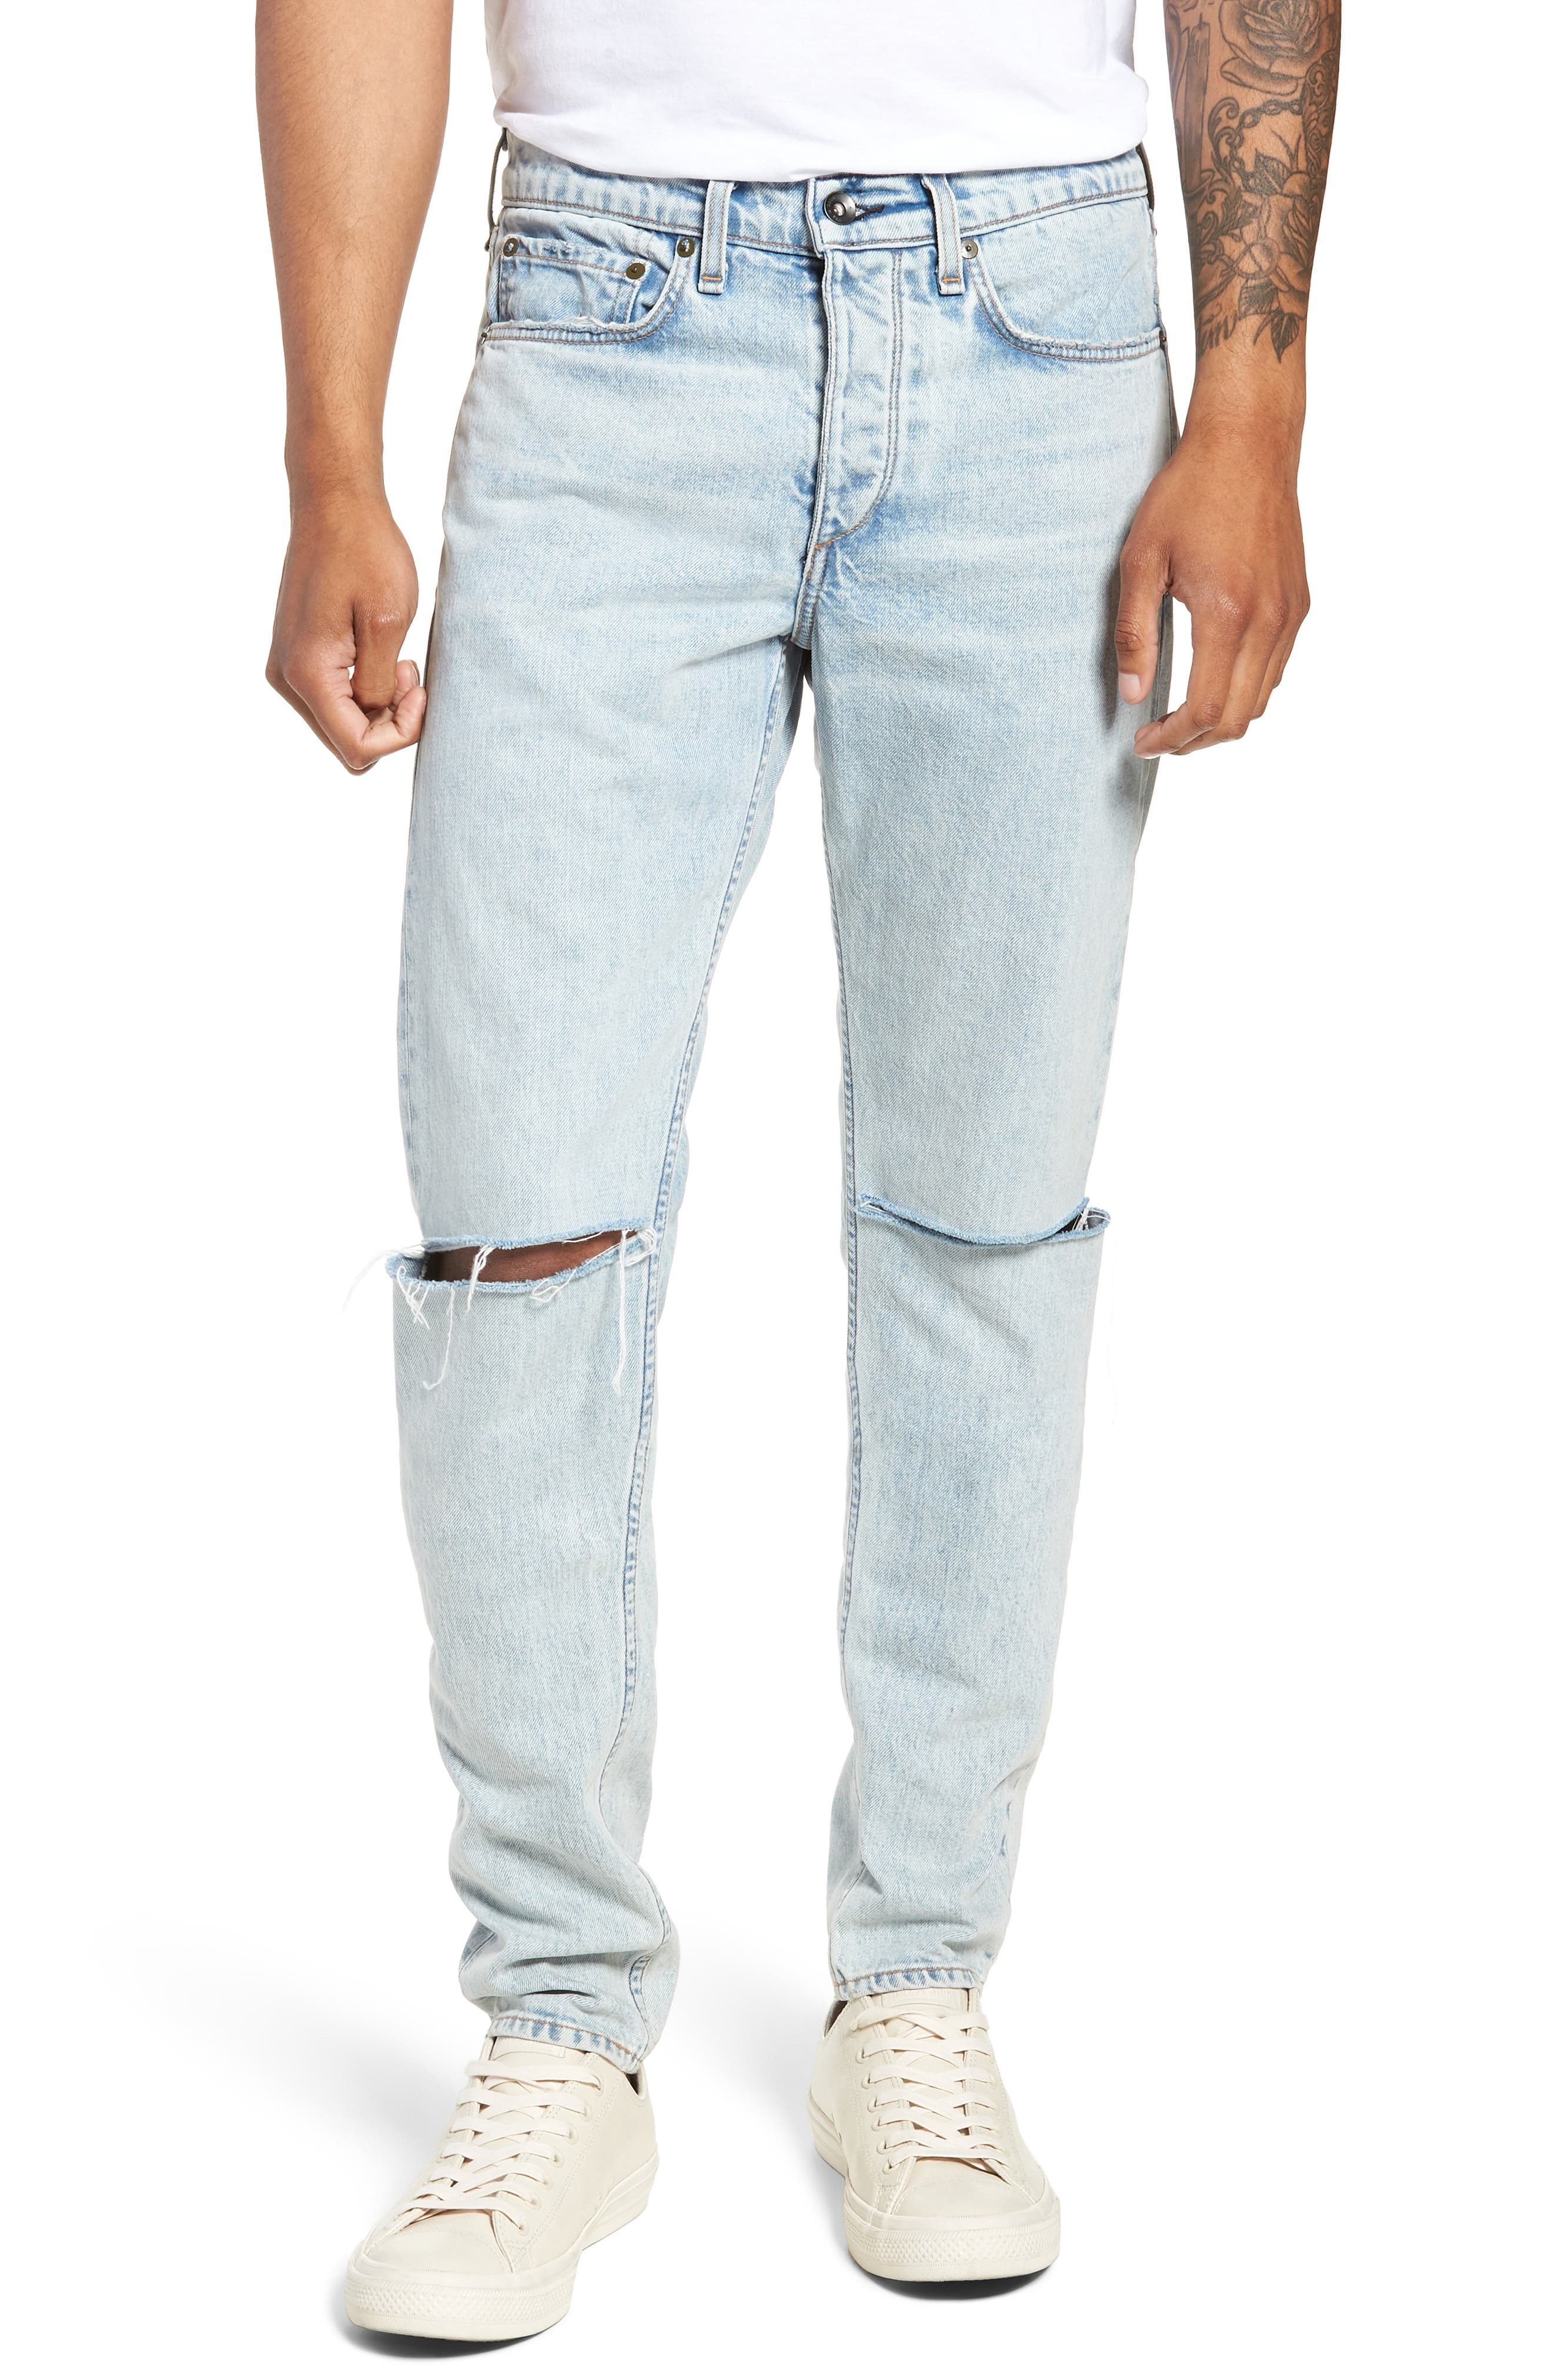 Fit 1 Skinny Fit Jeans,                         Main,                         color, JASPER WITH HOLES